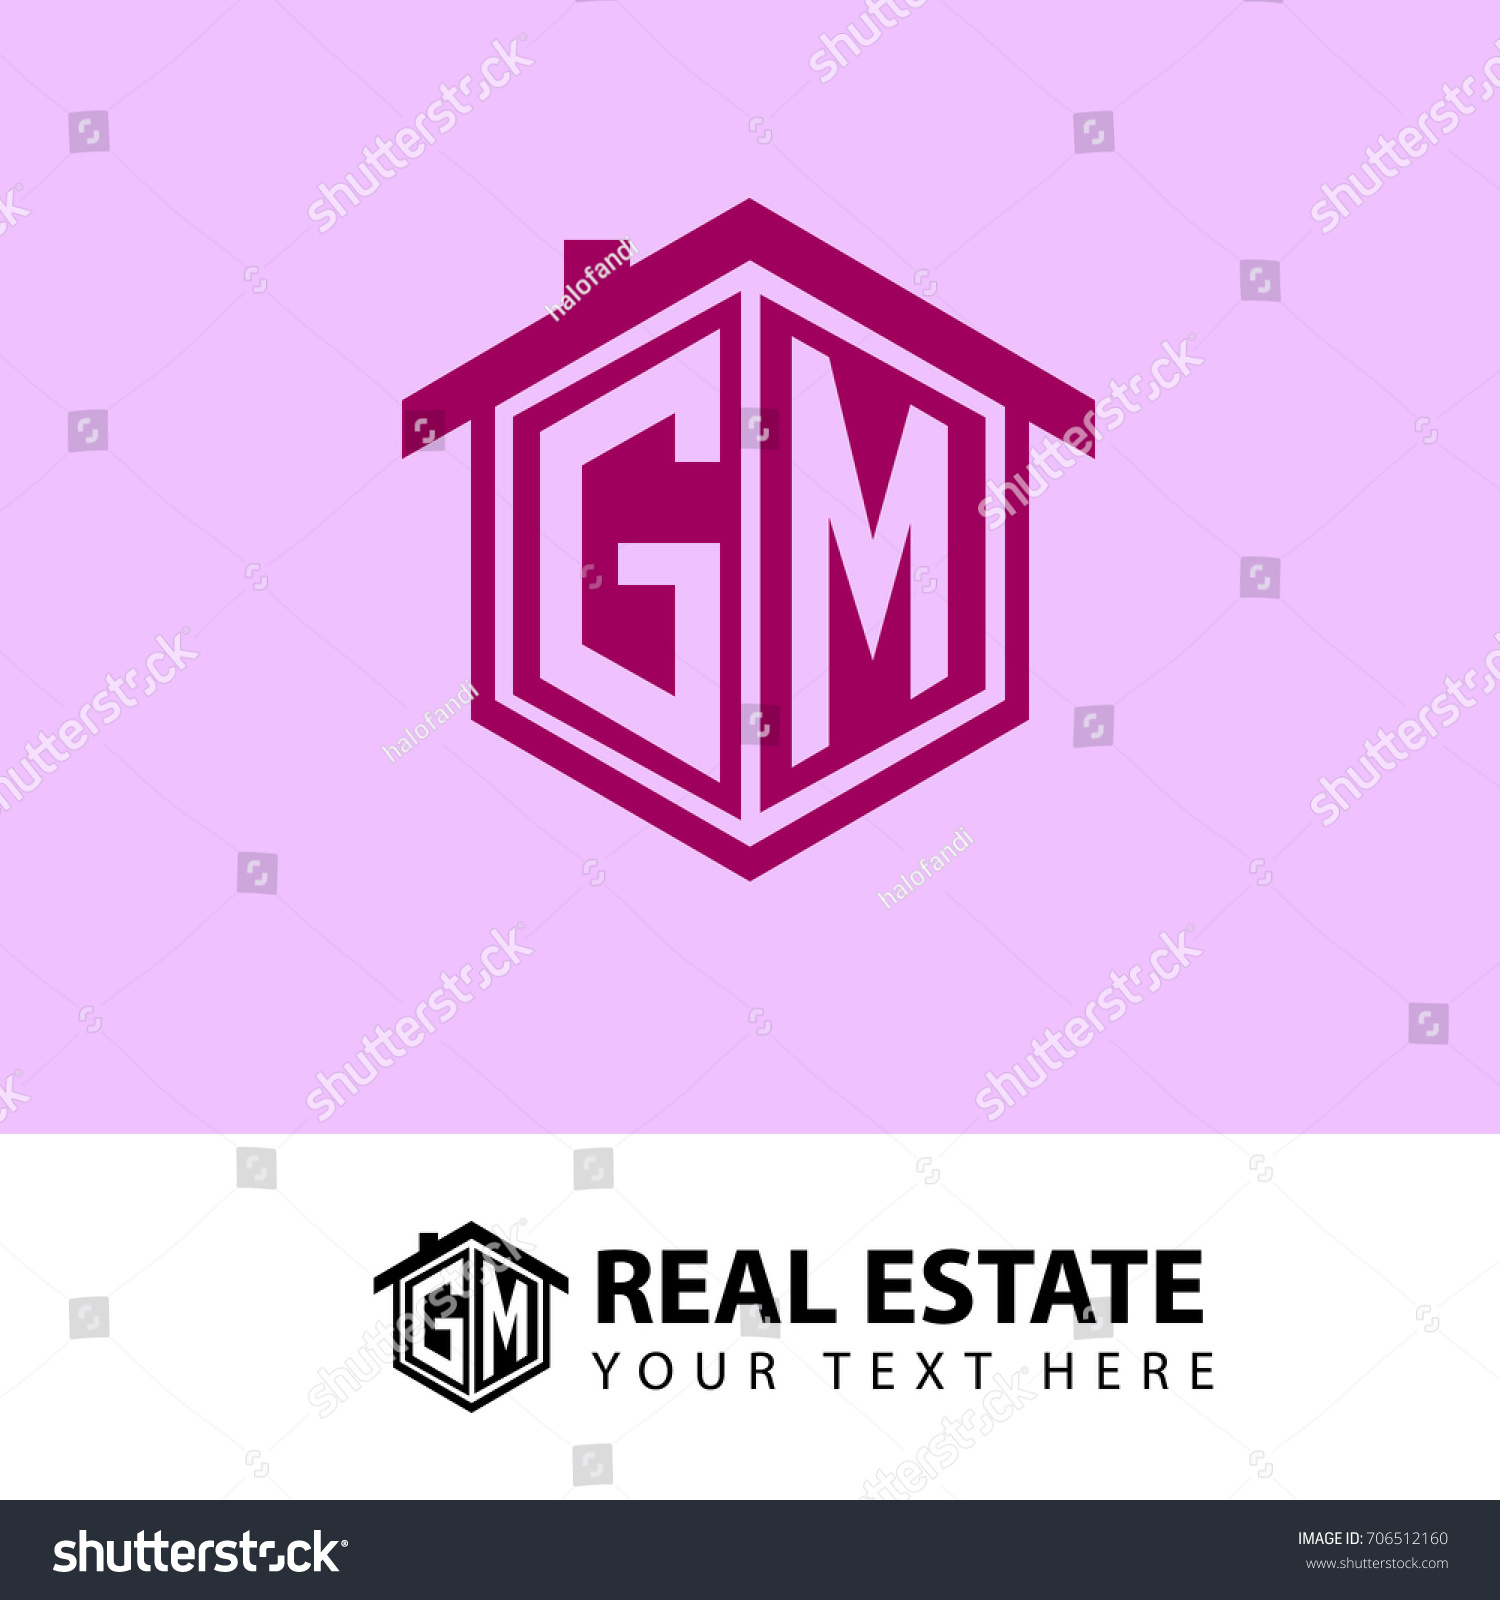 Initial Letter G M GM House Stock Vector (Royalty Free) 706512160 ...